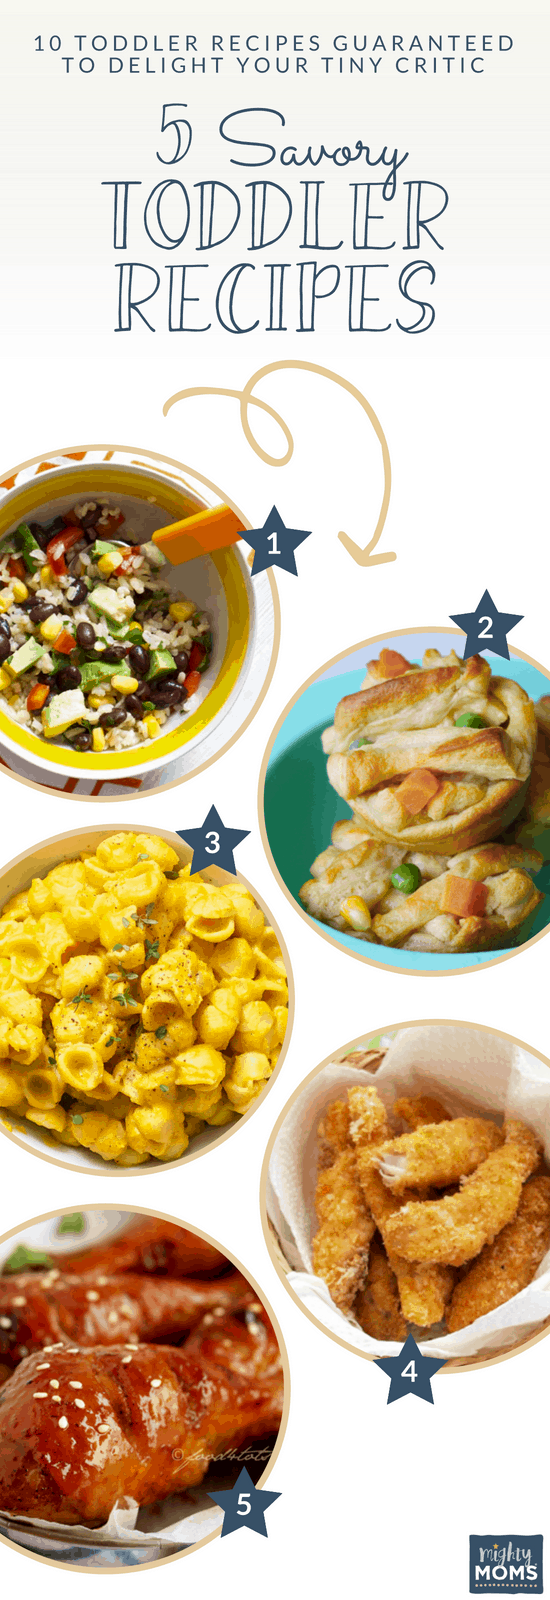 5 Yummy Toddler Recipes for Lunch - MightyMoms.club